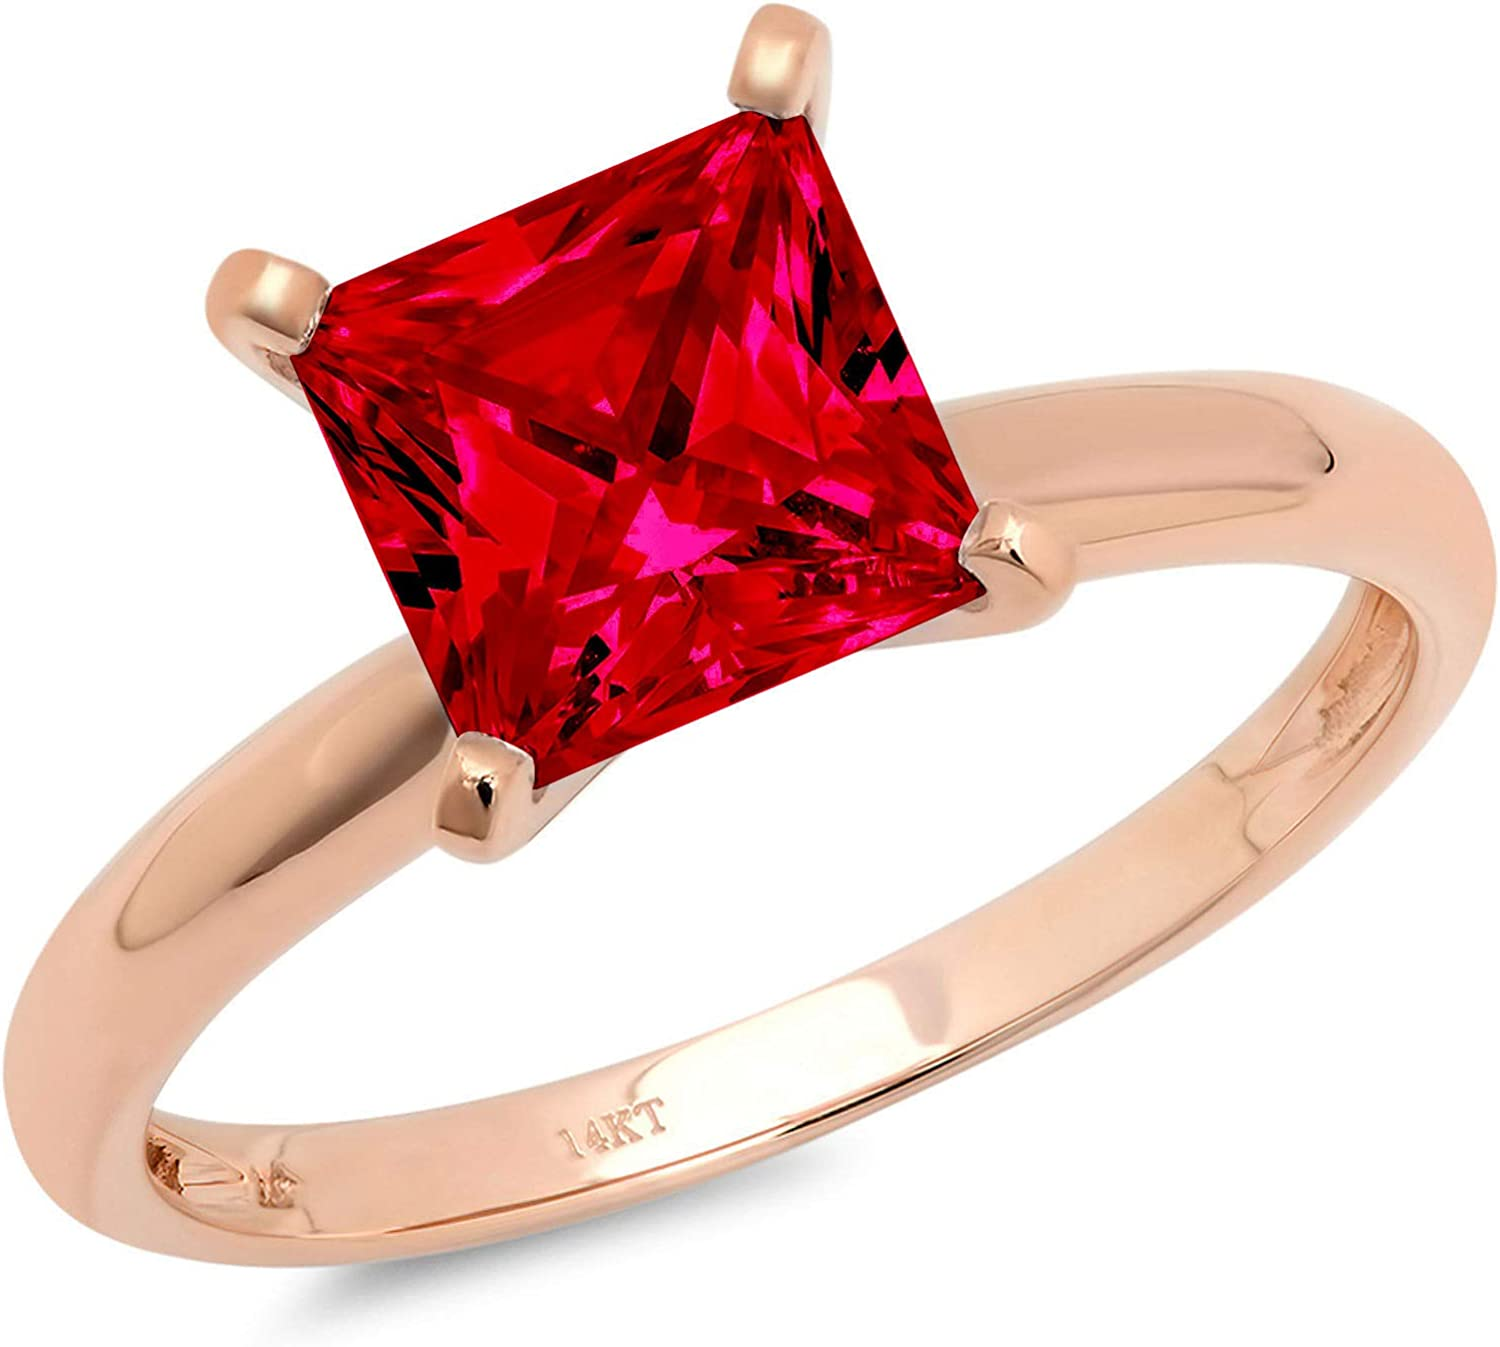 2.5 ct Brilliant Princess Cut Solitaire Flawless Stunning Pink Tourmaline Ideal VVS1 4-Prong Engagement Wedding Bridal Promise Anniversary Designer Ring in Solid 14k Rose Gold for Women